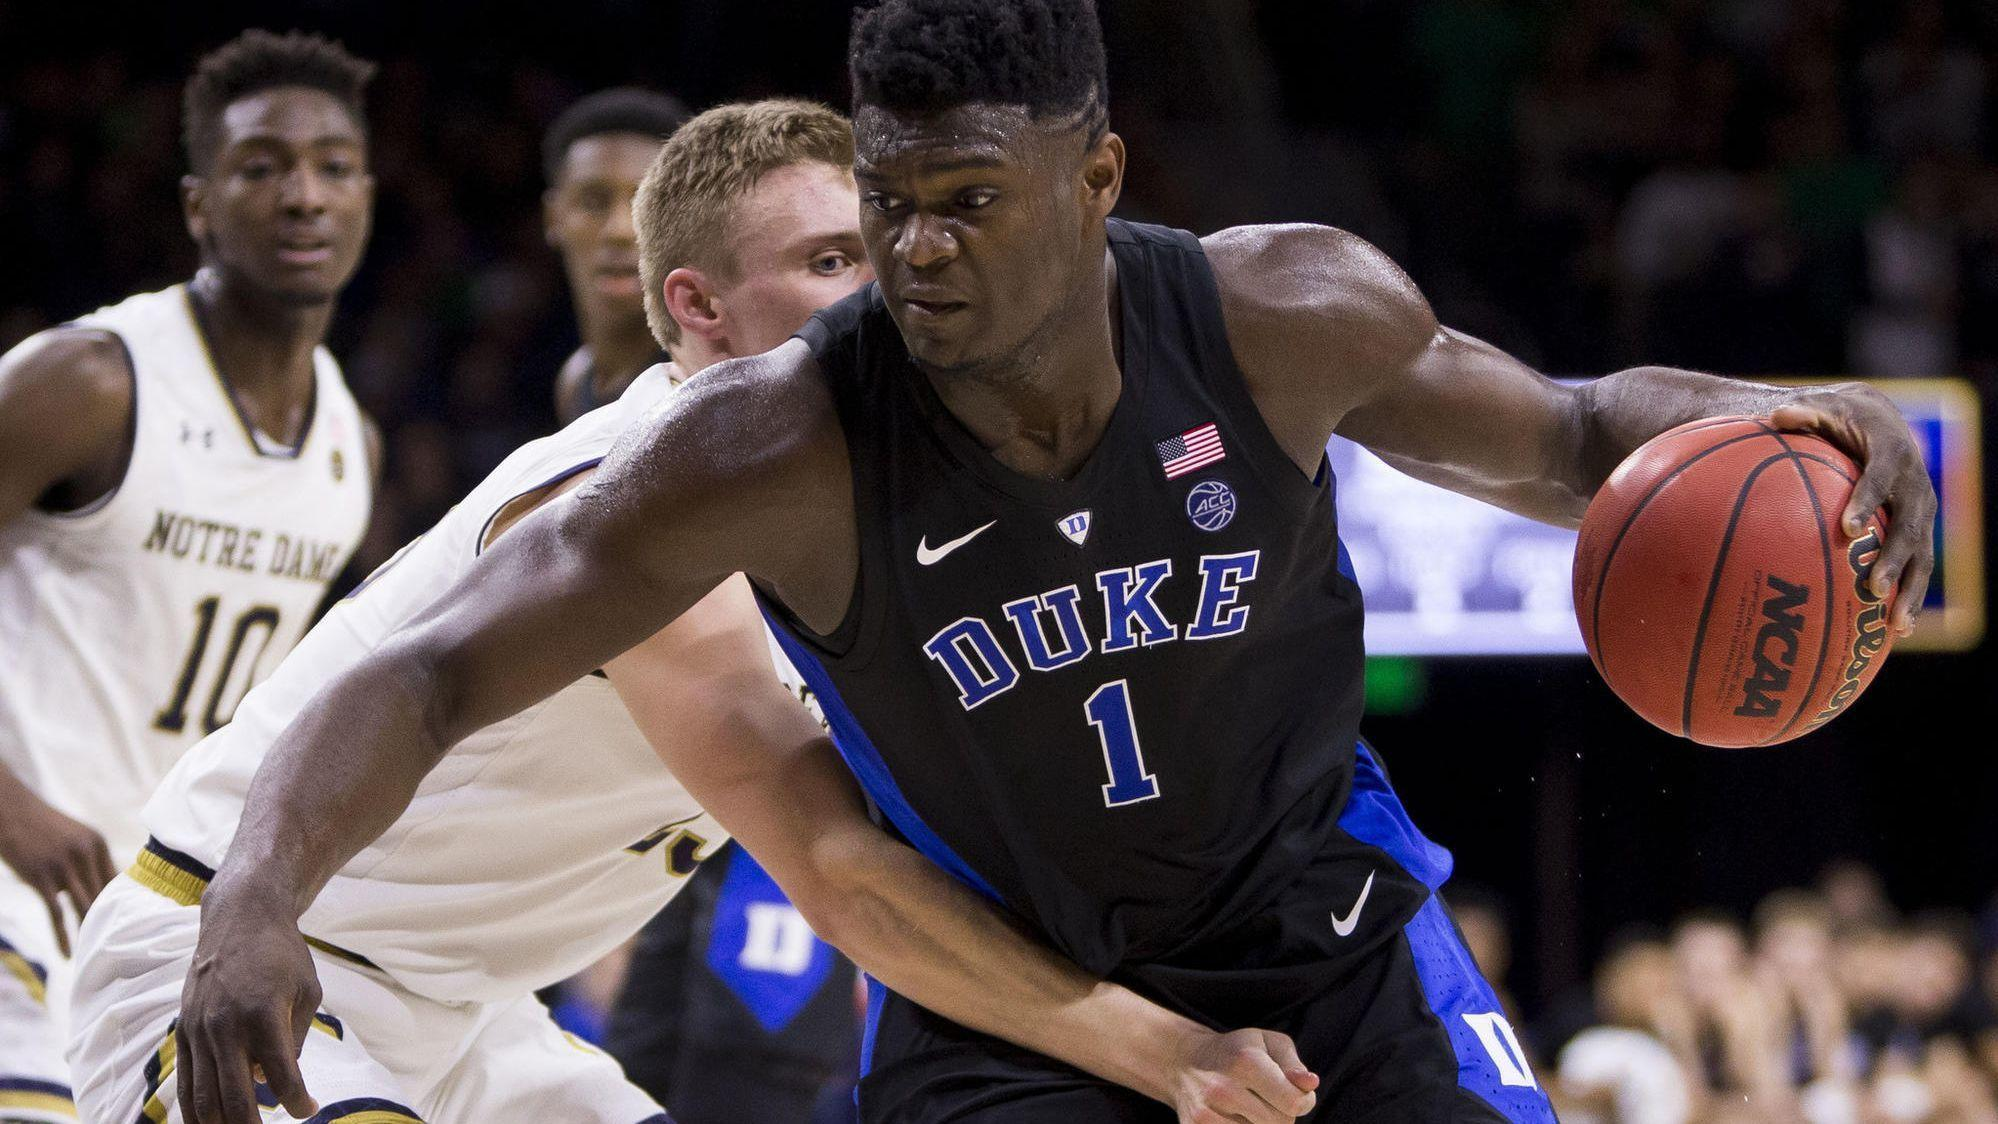 Zion Williamson Leaves An Impression On Notre Dame I Don T Know If 414e92b04